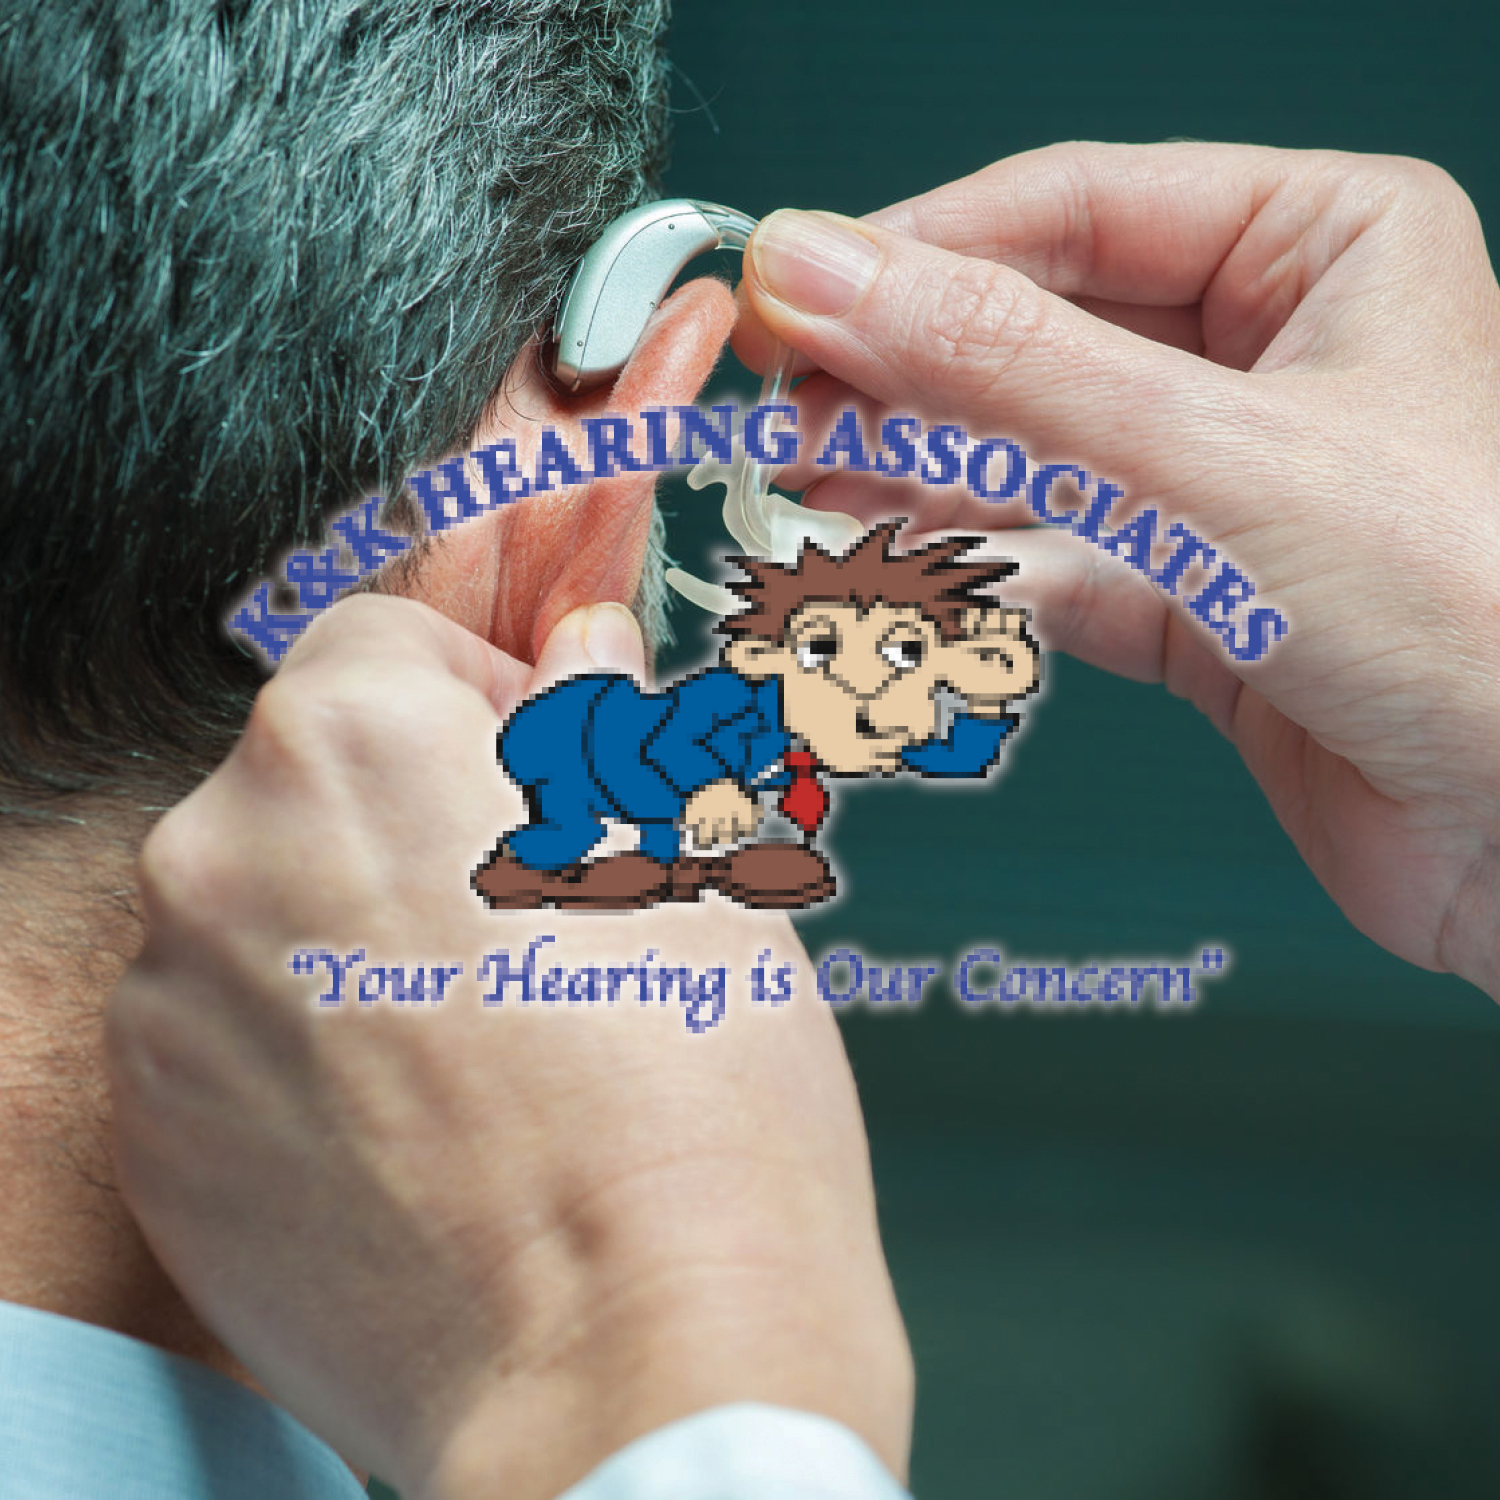 We offer the best value on advanced hearing aid technology in Hagerstown and Frederick, MD as well as Chambersburg and Hanover, PA.    -Click image to view current offers-